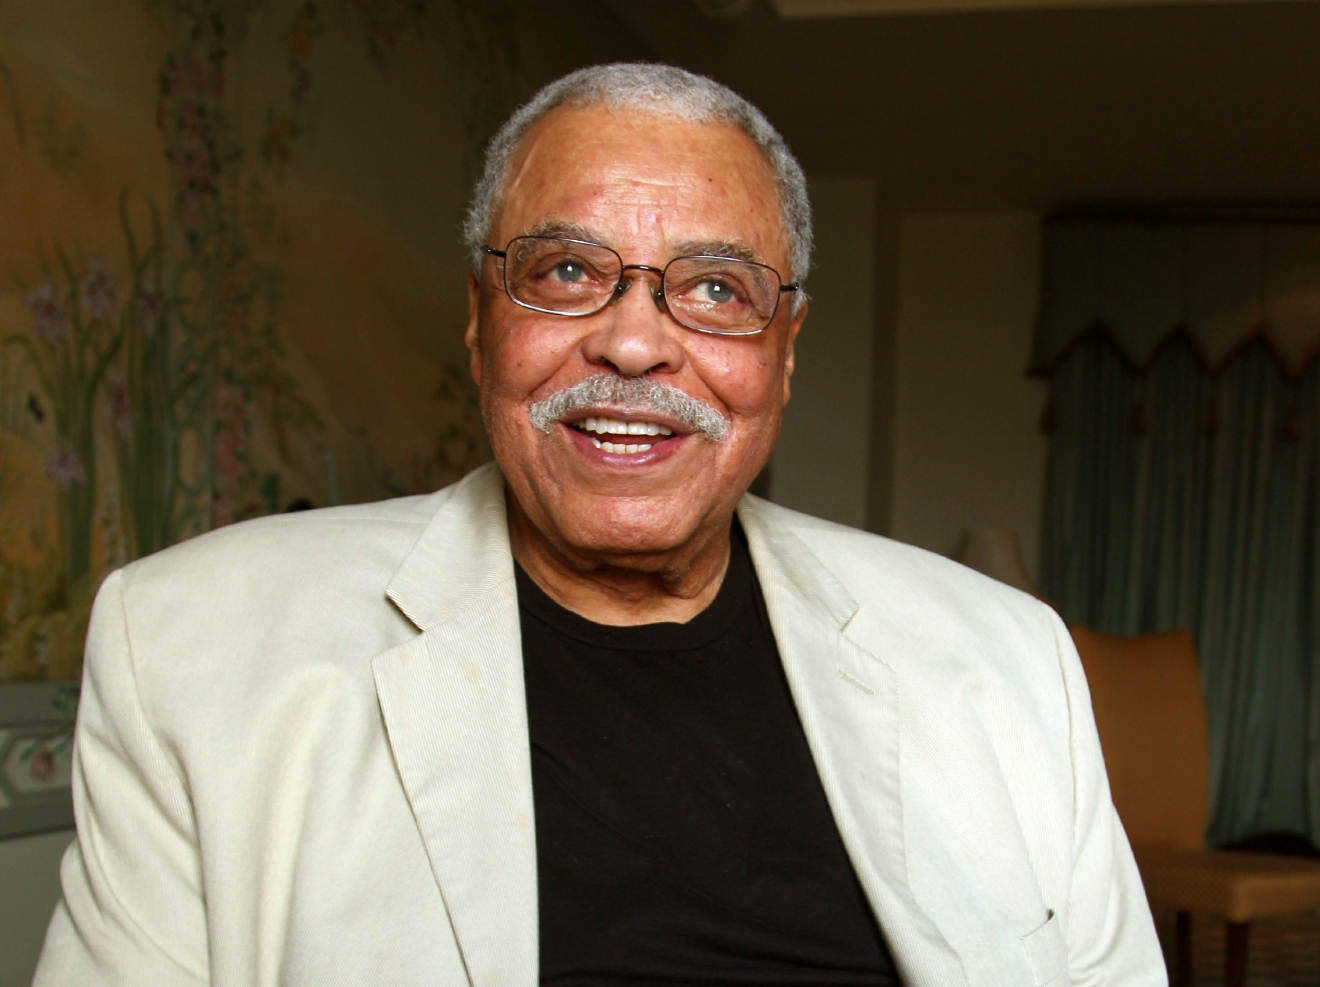 FILE - In this Jan. 7, 2013, file photo, actor James Earl Jones poses for photos in Sydney, Australia. Jones will serve as a presenter for this year's Tony Awards, help Sunday, June 12, 2016, at the Beacon Theatre in New York. (AP Photo/Rick Rycroft, File)